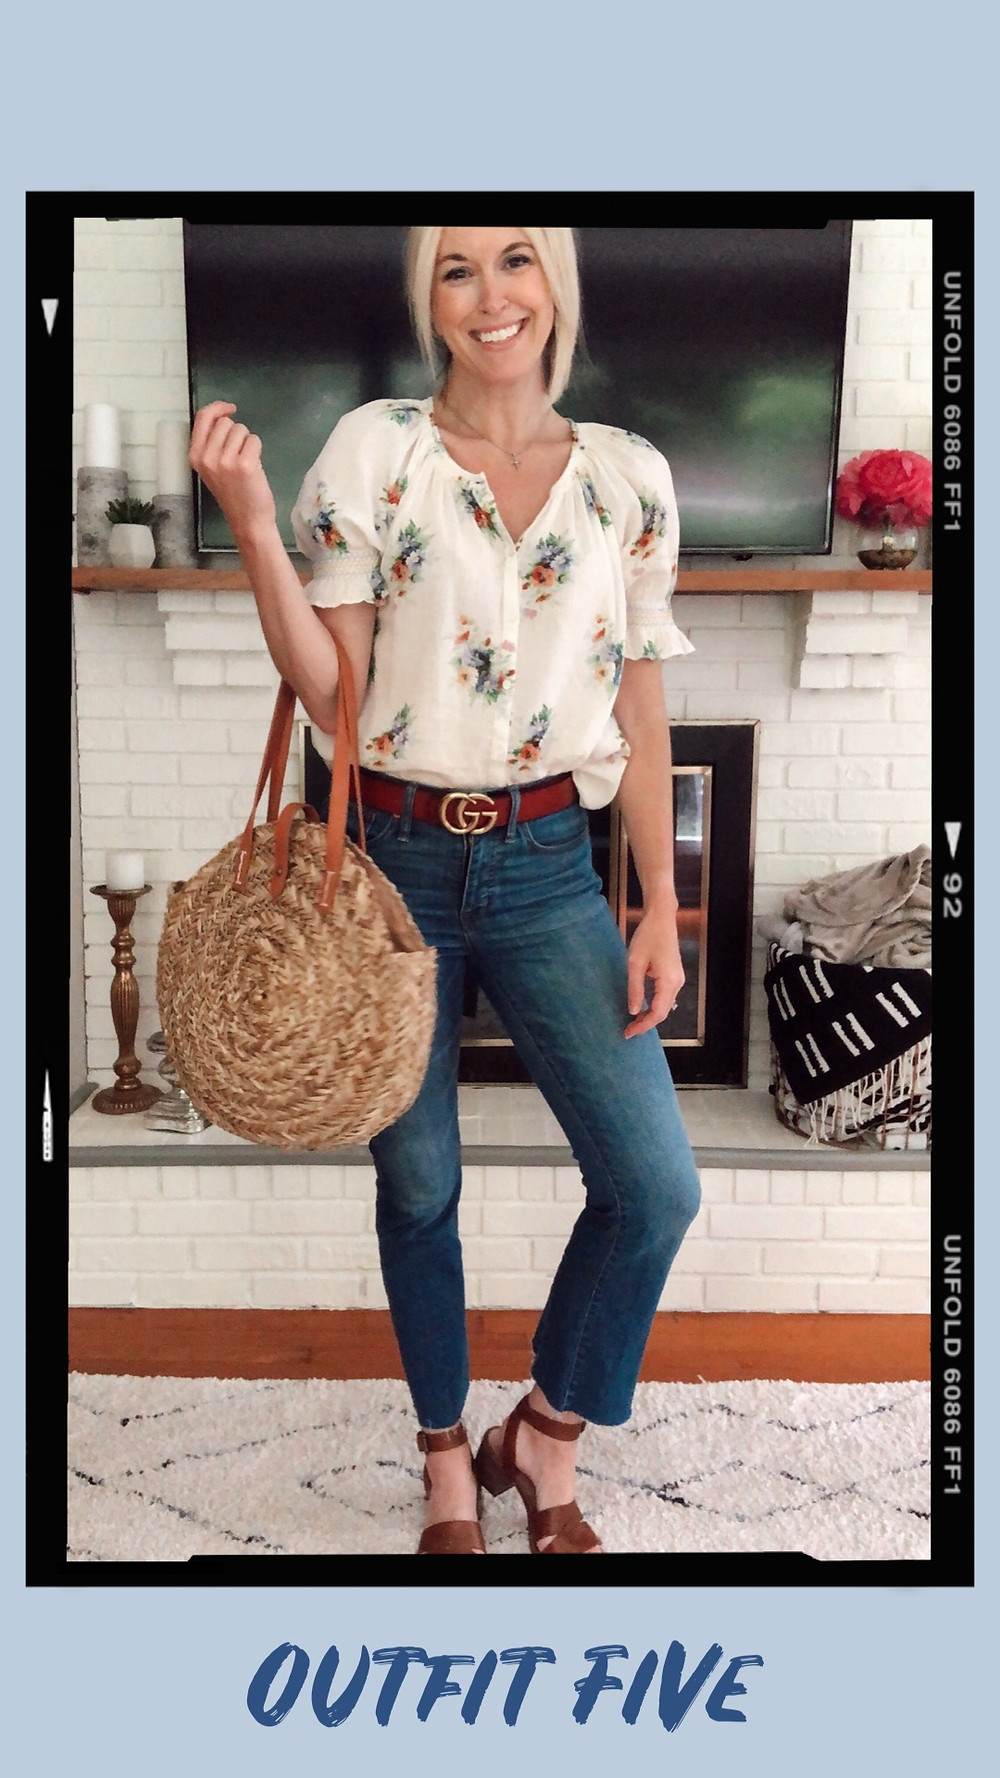 Summer capsule wardrobe outfit idea, Madewell floral smocked blouse, cropped flare jeans, Target round straw bag, GG designer dupe belt, Madewell Kate heeled sandals wardrobe stylist and fashion blogger